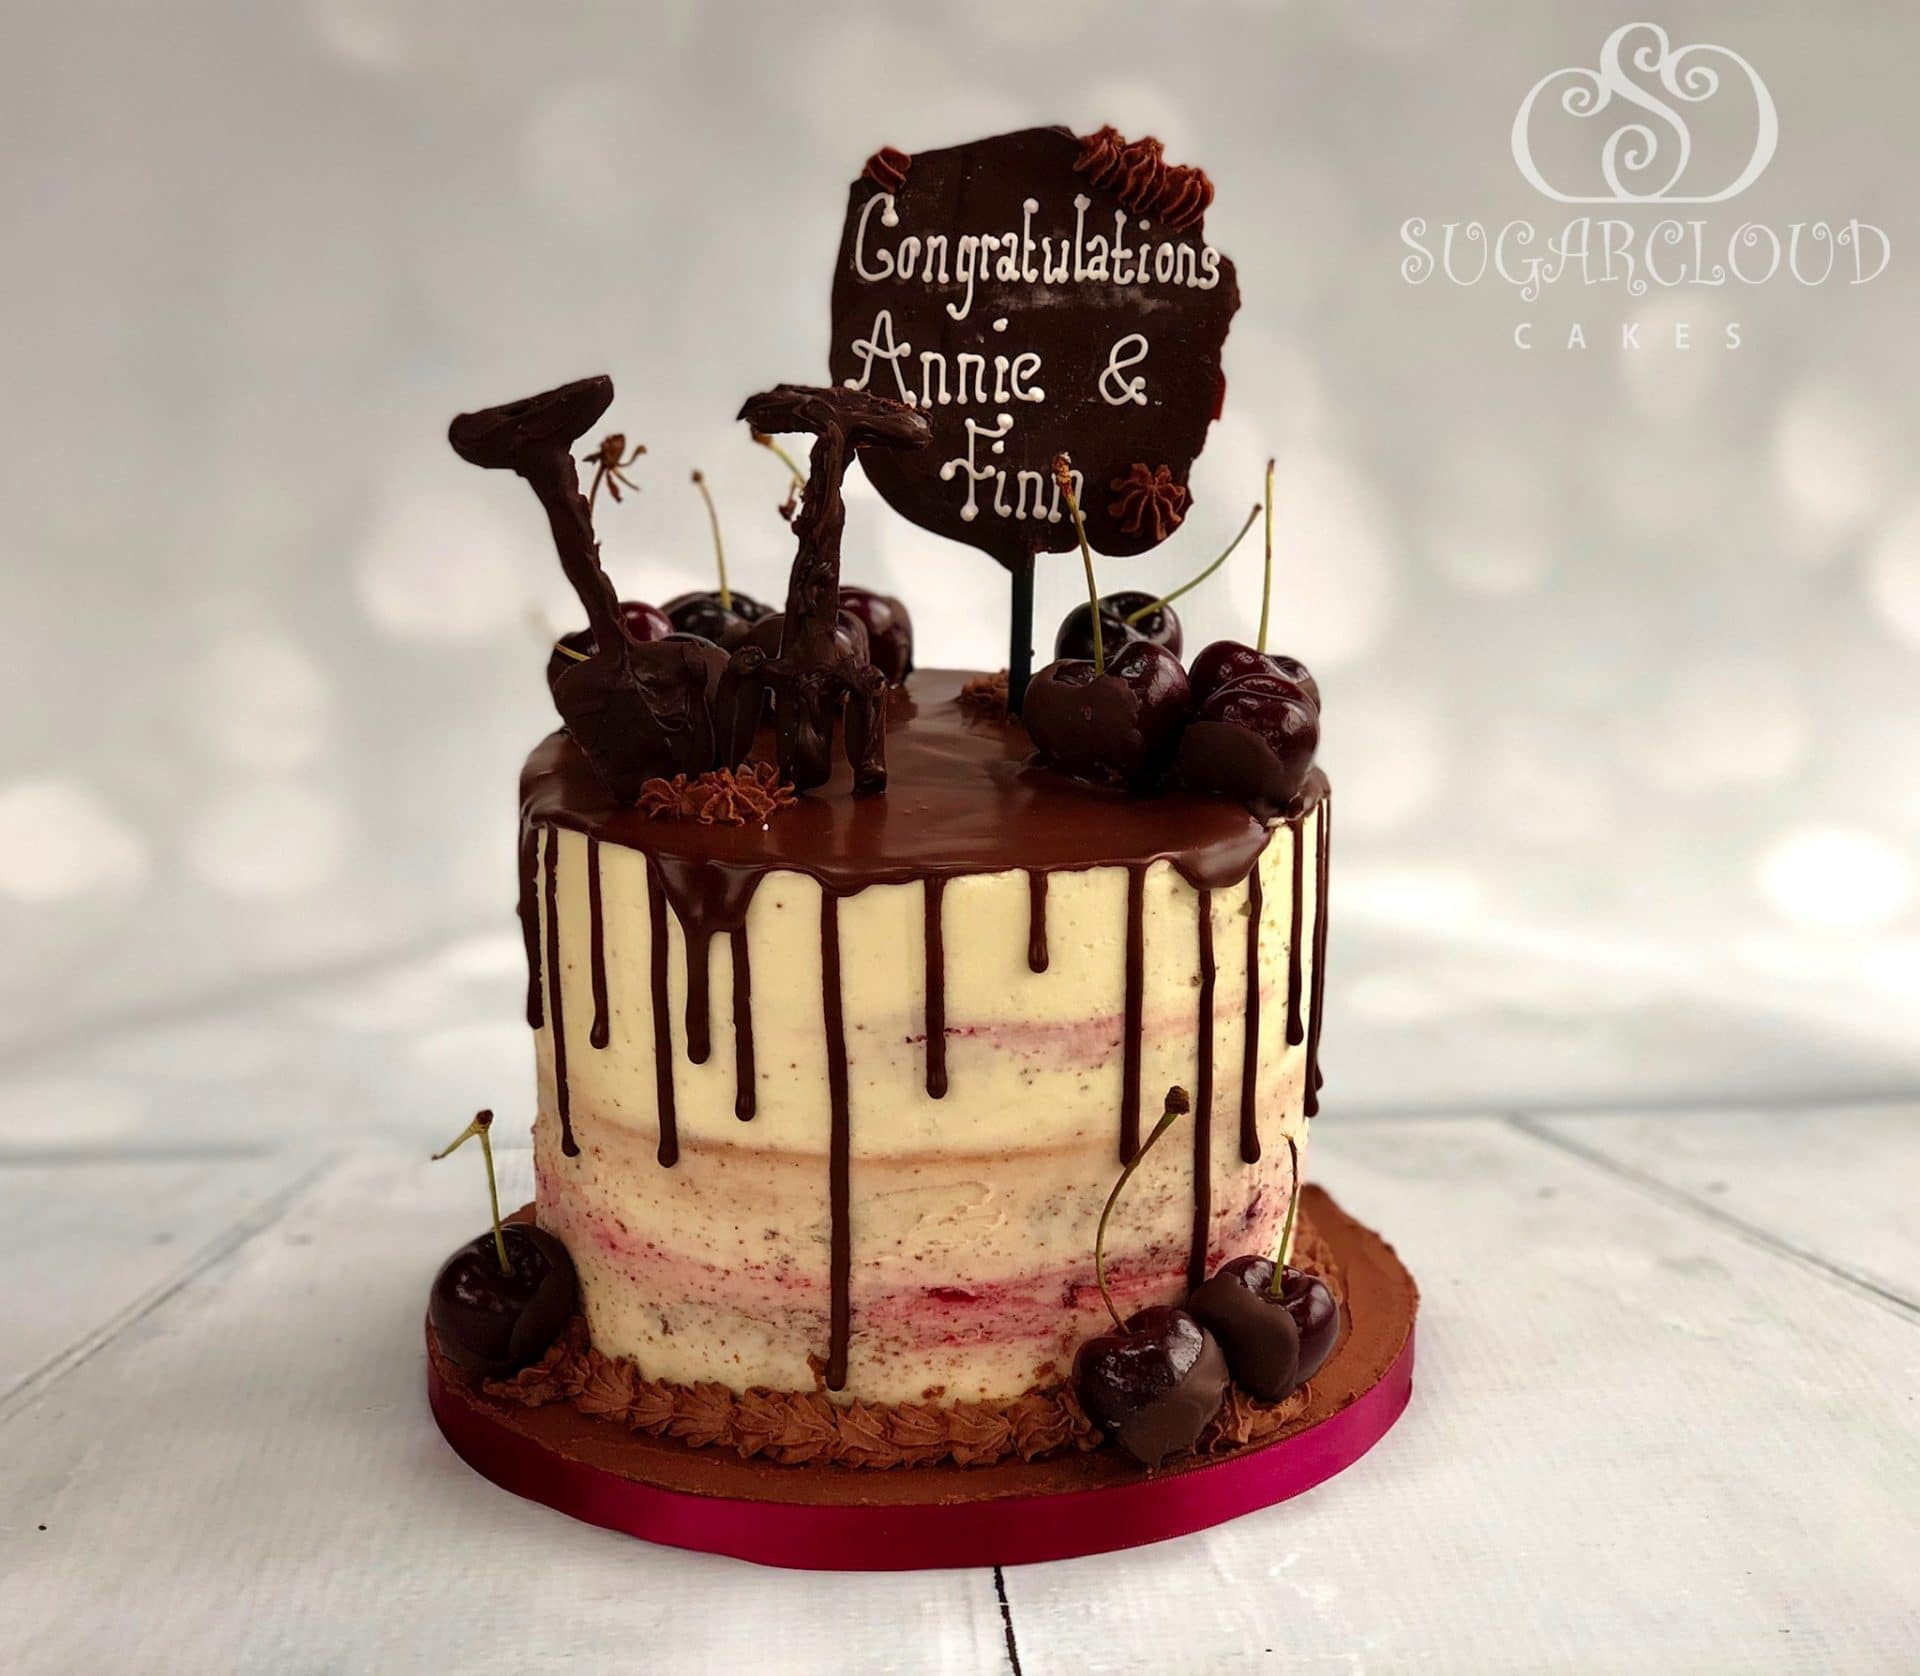 Black forest inspired cake with a chocolate drip